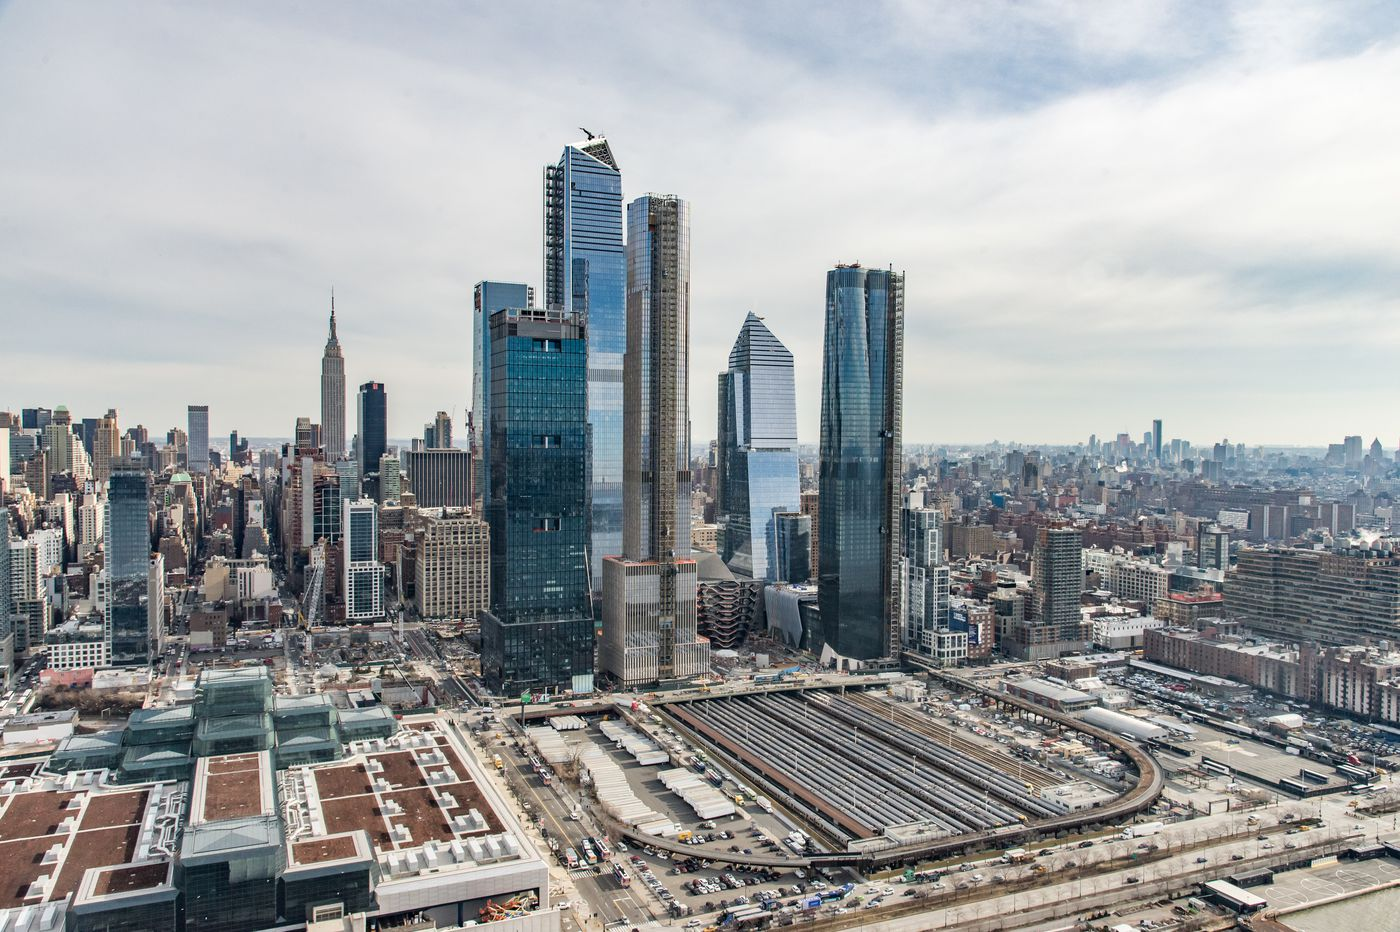 As construction starts at Philly's Schuylkill Yards, New